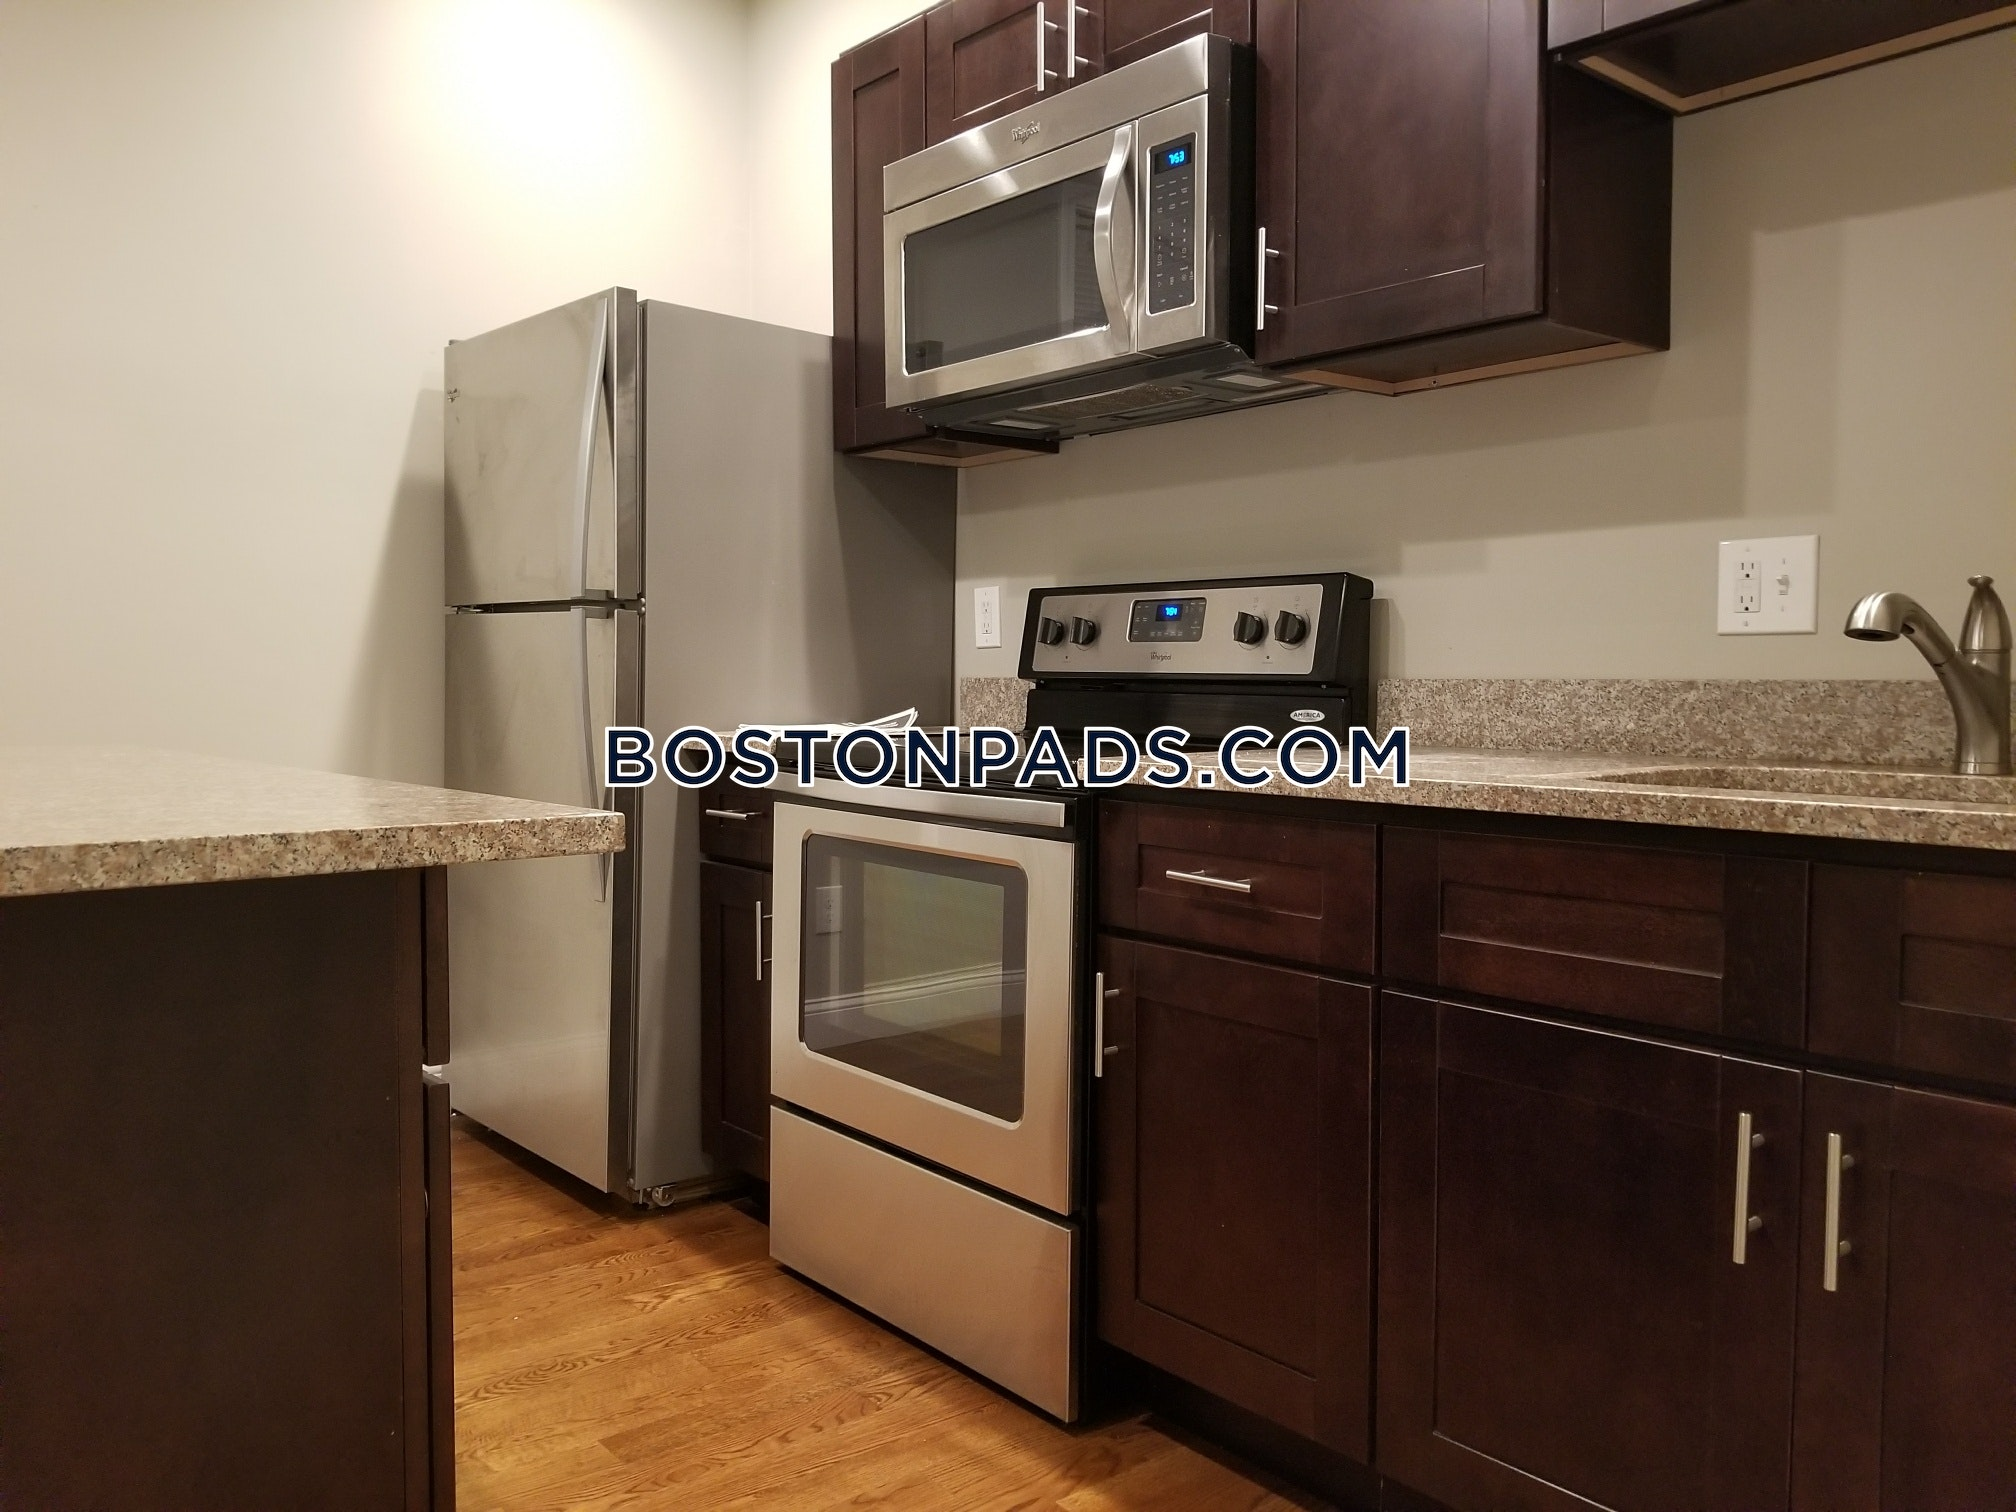 Dorchester/south Boston Border Apartment for rent 2 ...